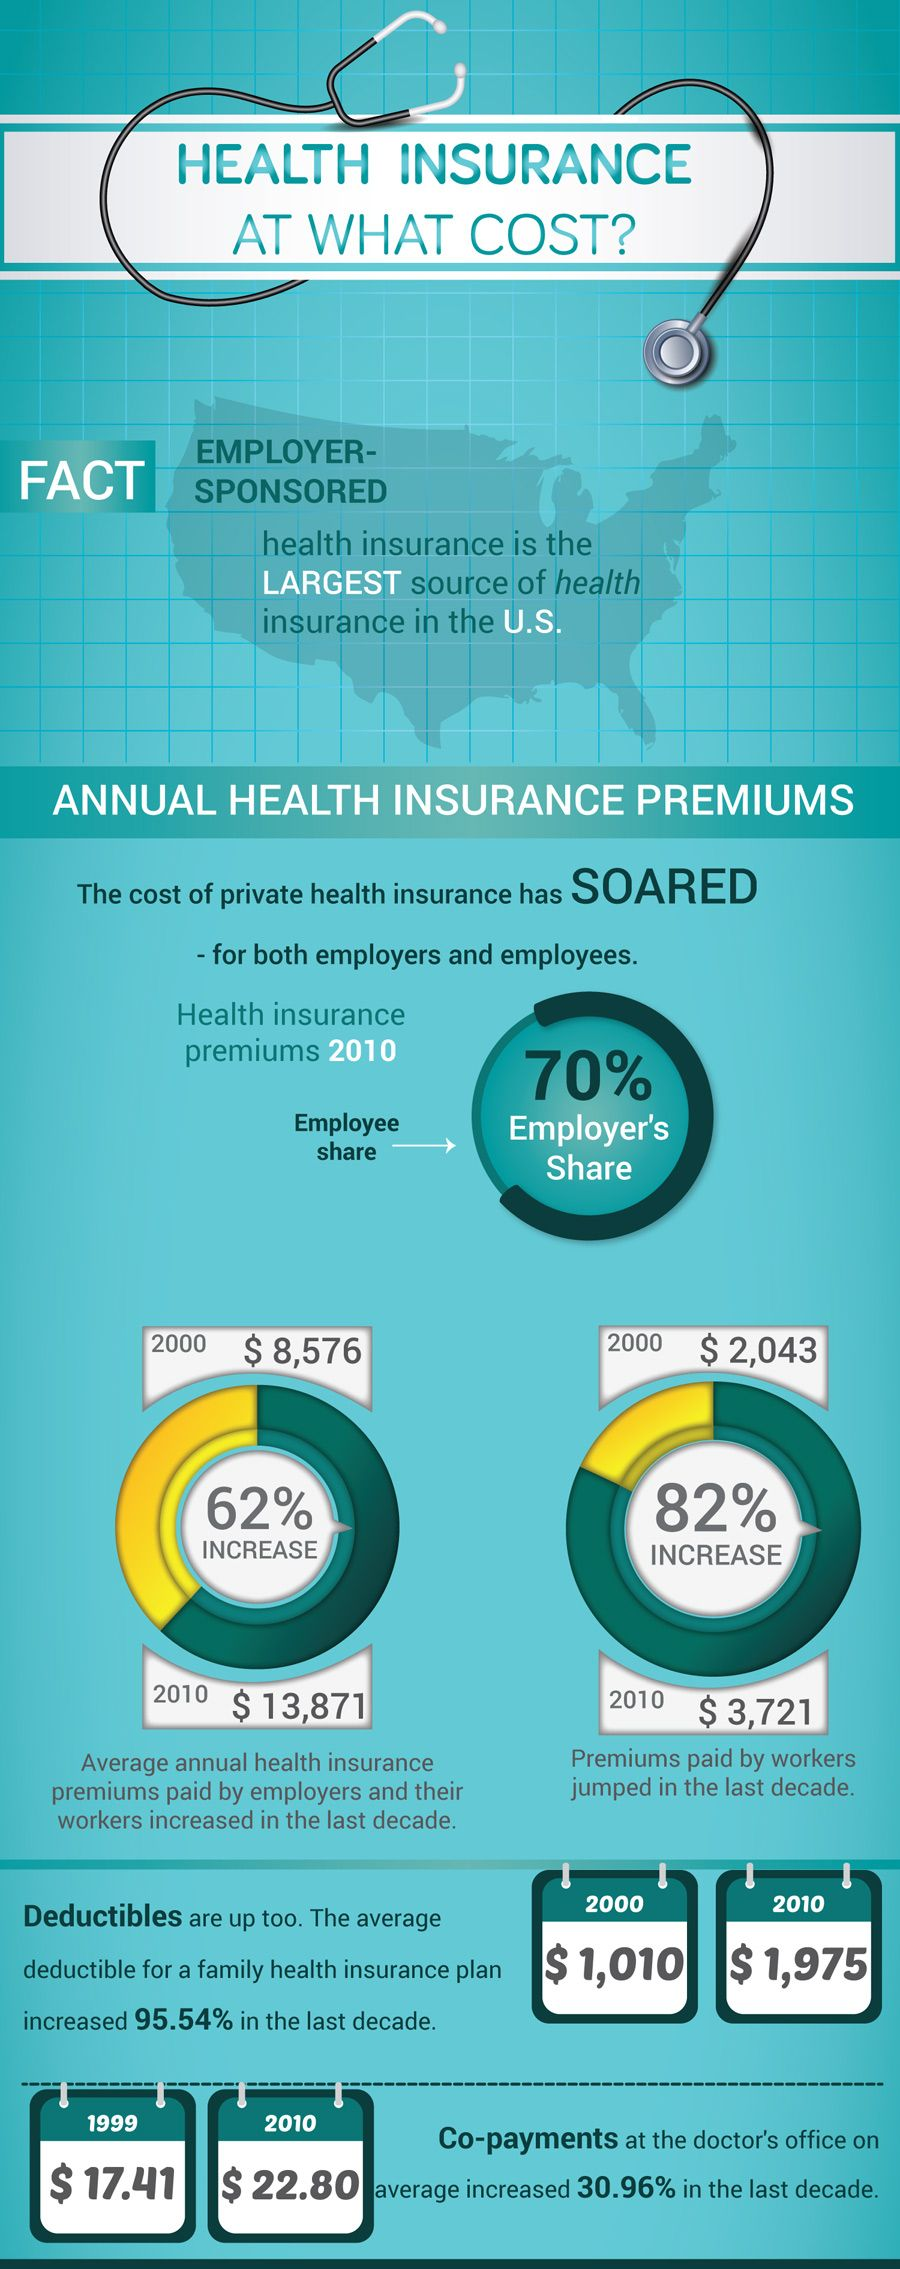 Employer Sponsored Health Insurance Is The Largest Source Of